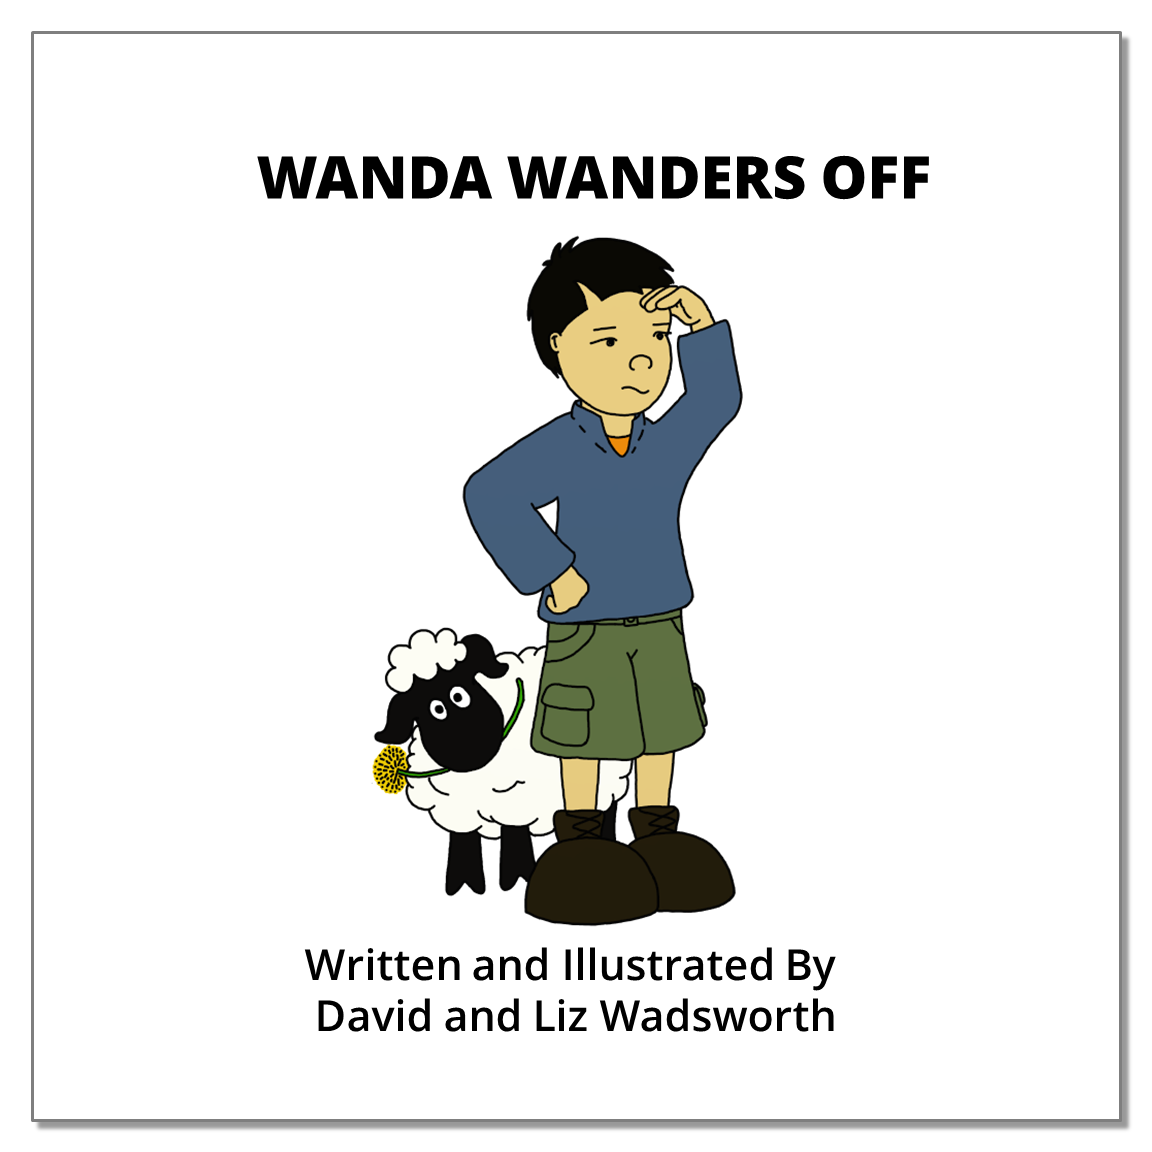 wanda wanders off - The parable of the lost sheep.